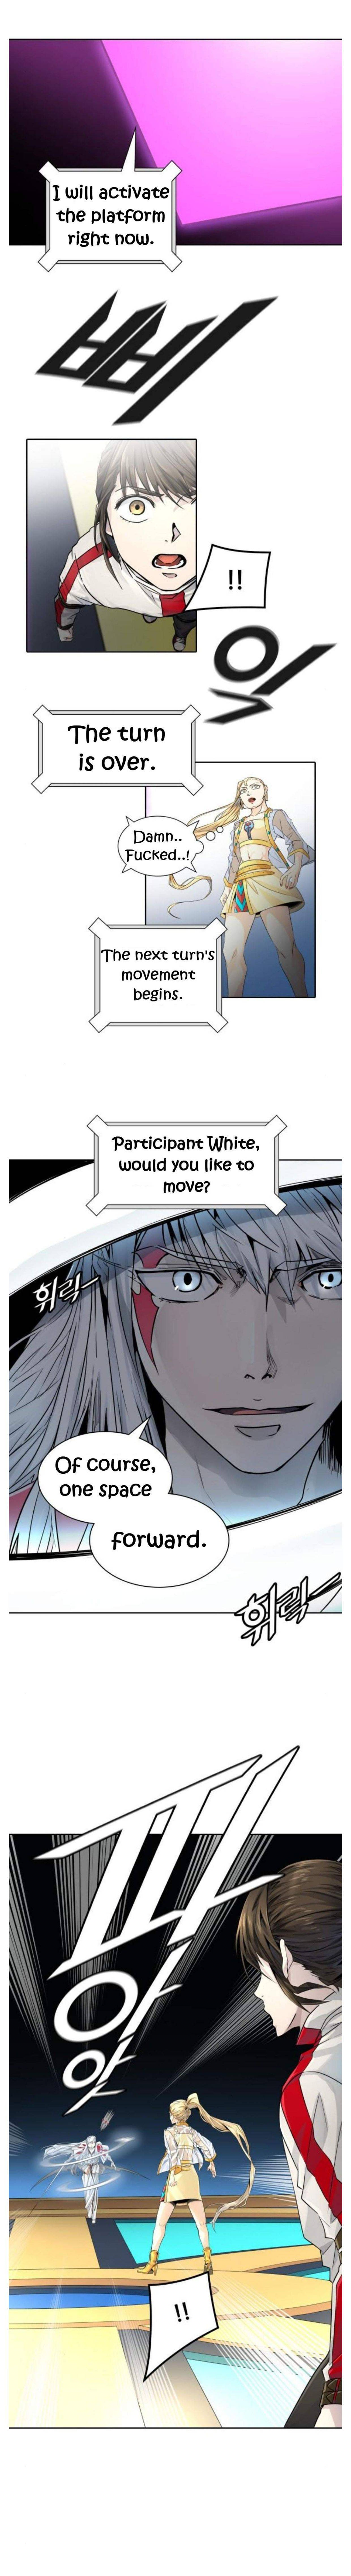 tower of god: Chapter 495 - Page 32